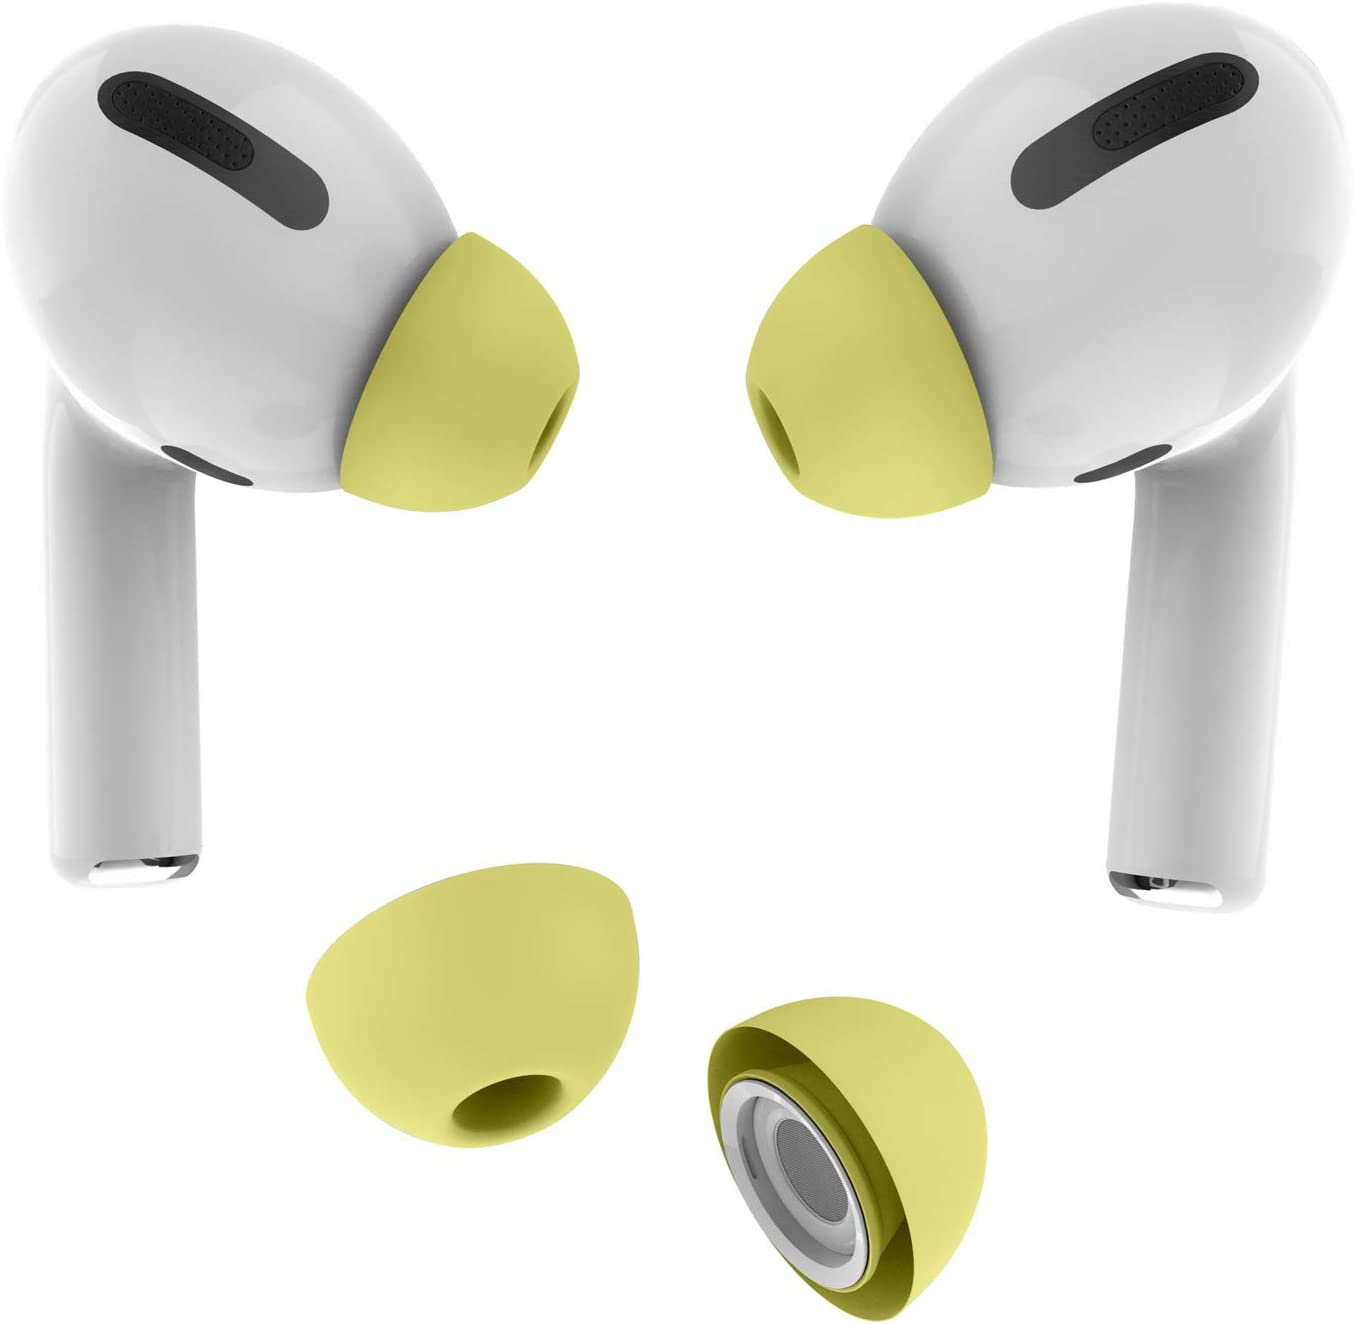 Allbingo Ear Tips Compatible with Airpods Pro, 2 Pairs Silicone Anti-Slip Replacement Earbuds Cover Accessories Small Medium Large Compatible for Apple AirPods Pro (Large, Yellow)